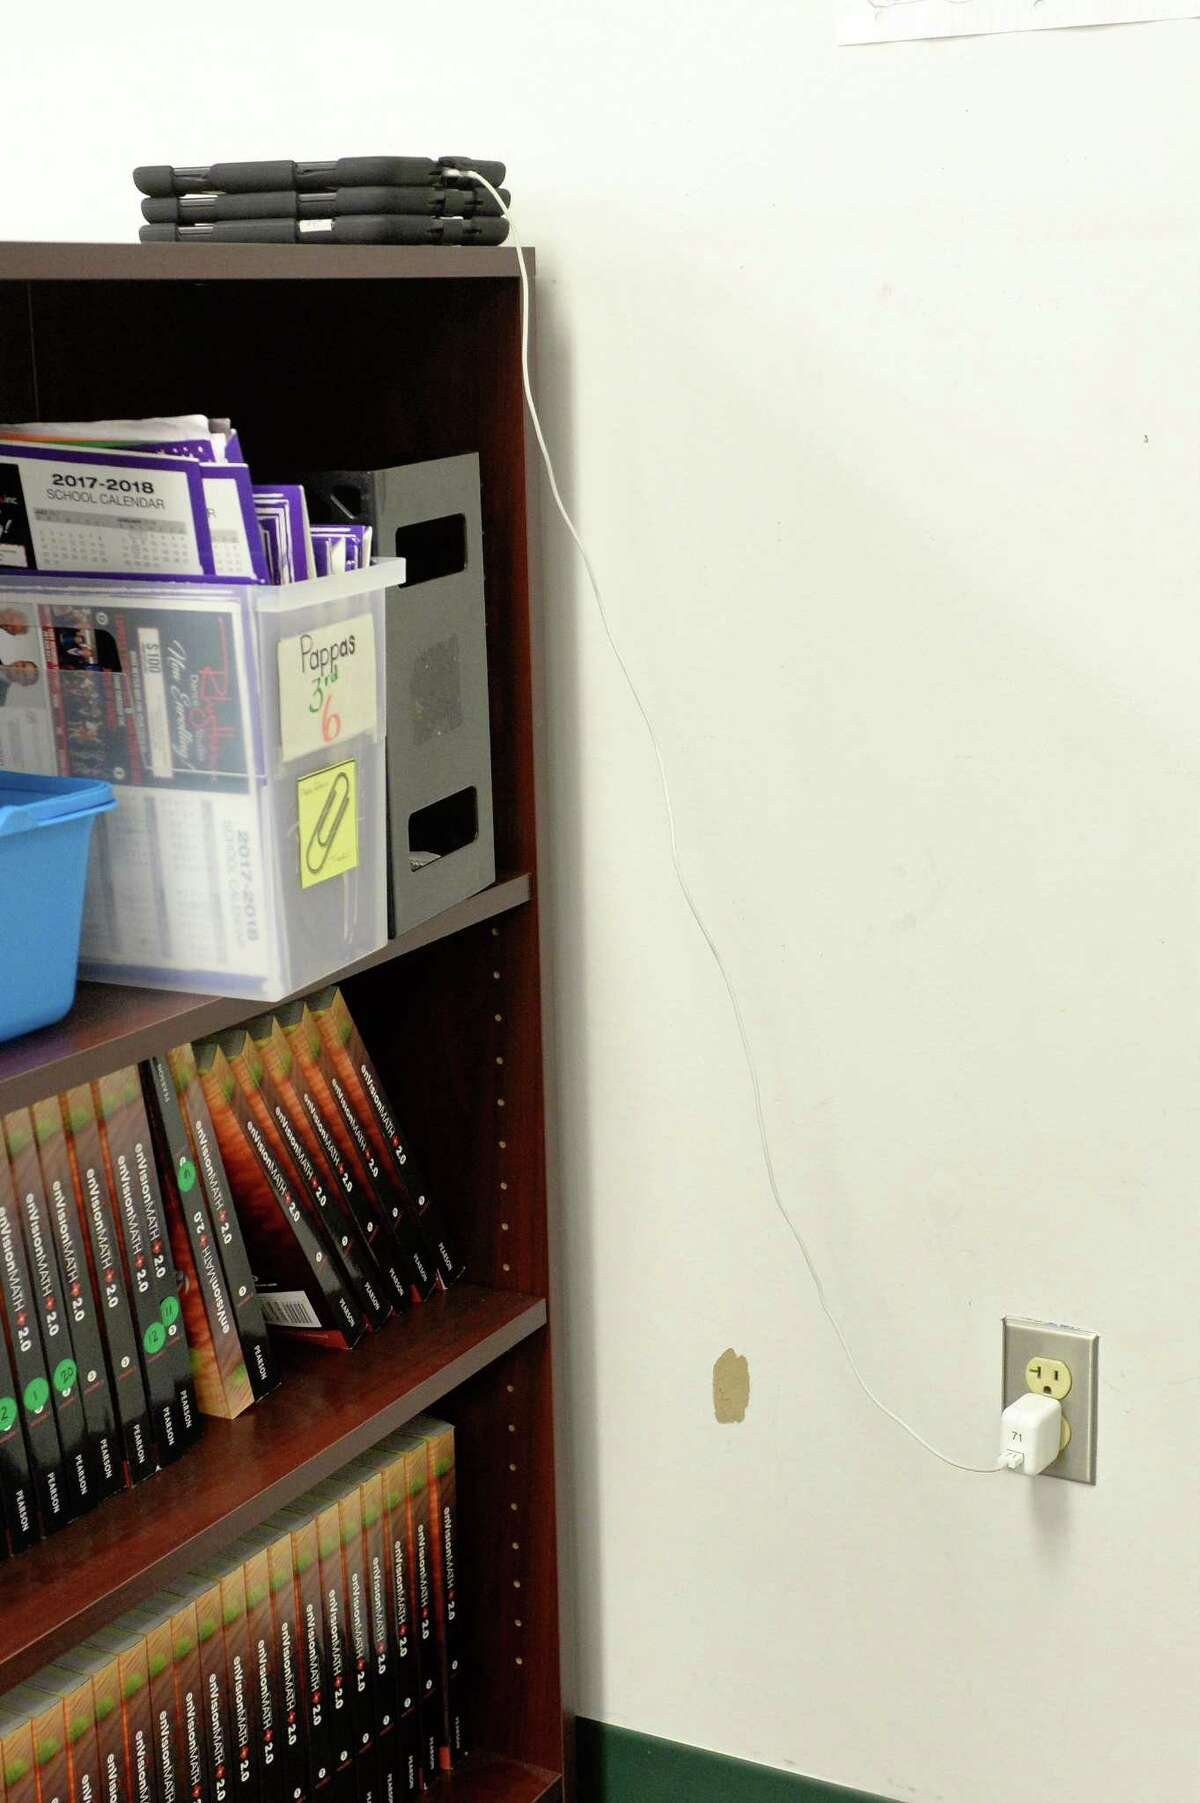 Outdated electrical systems at Fielder Elementary School require that devices be re-charged one at a time.